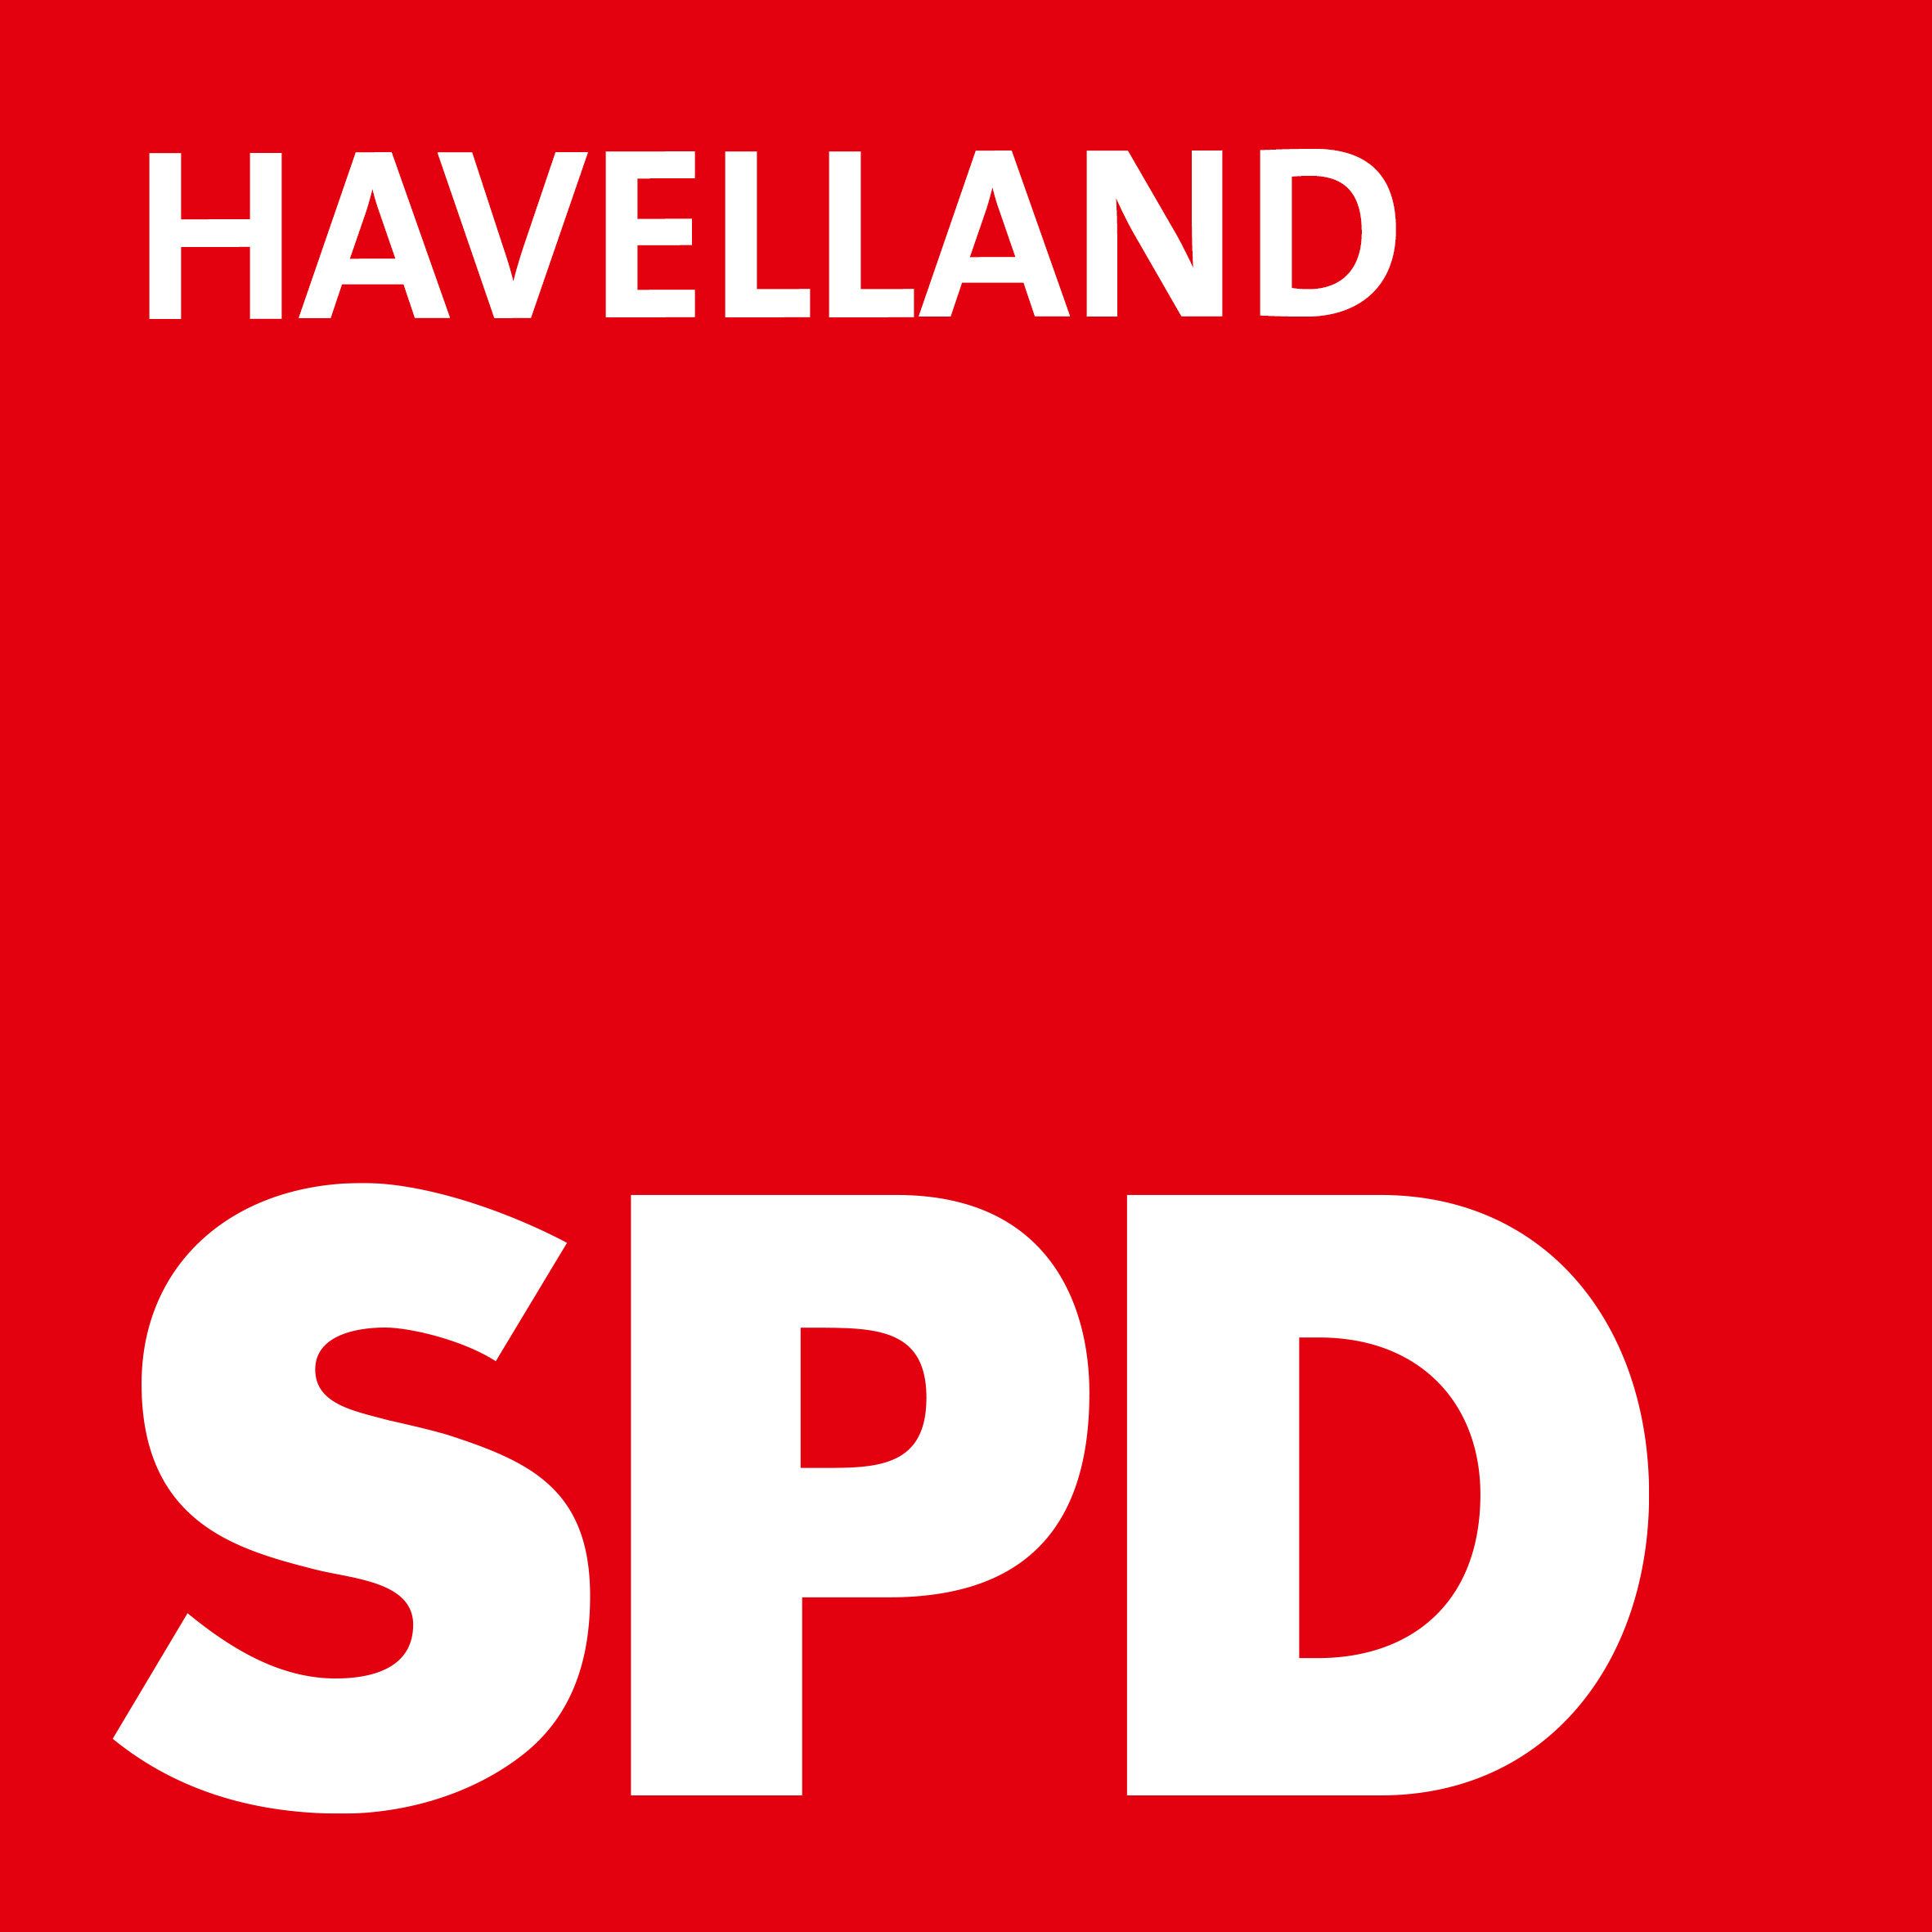 SPD Havelland